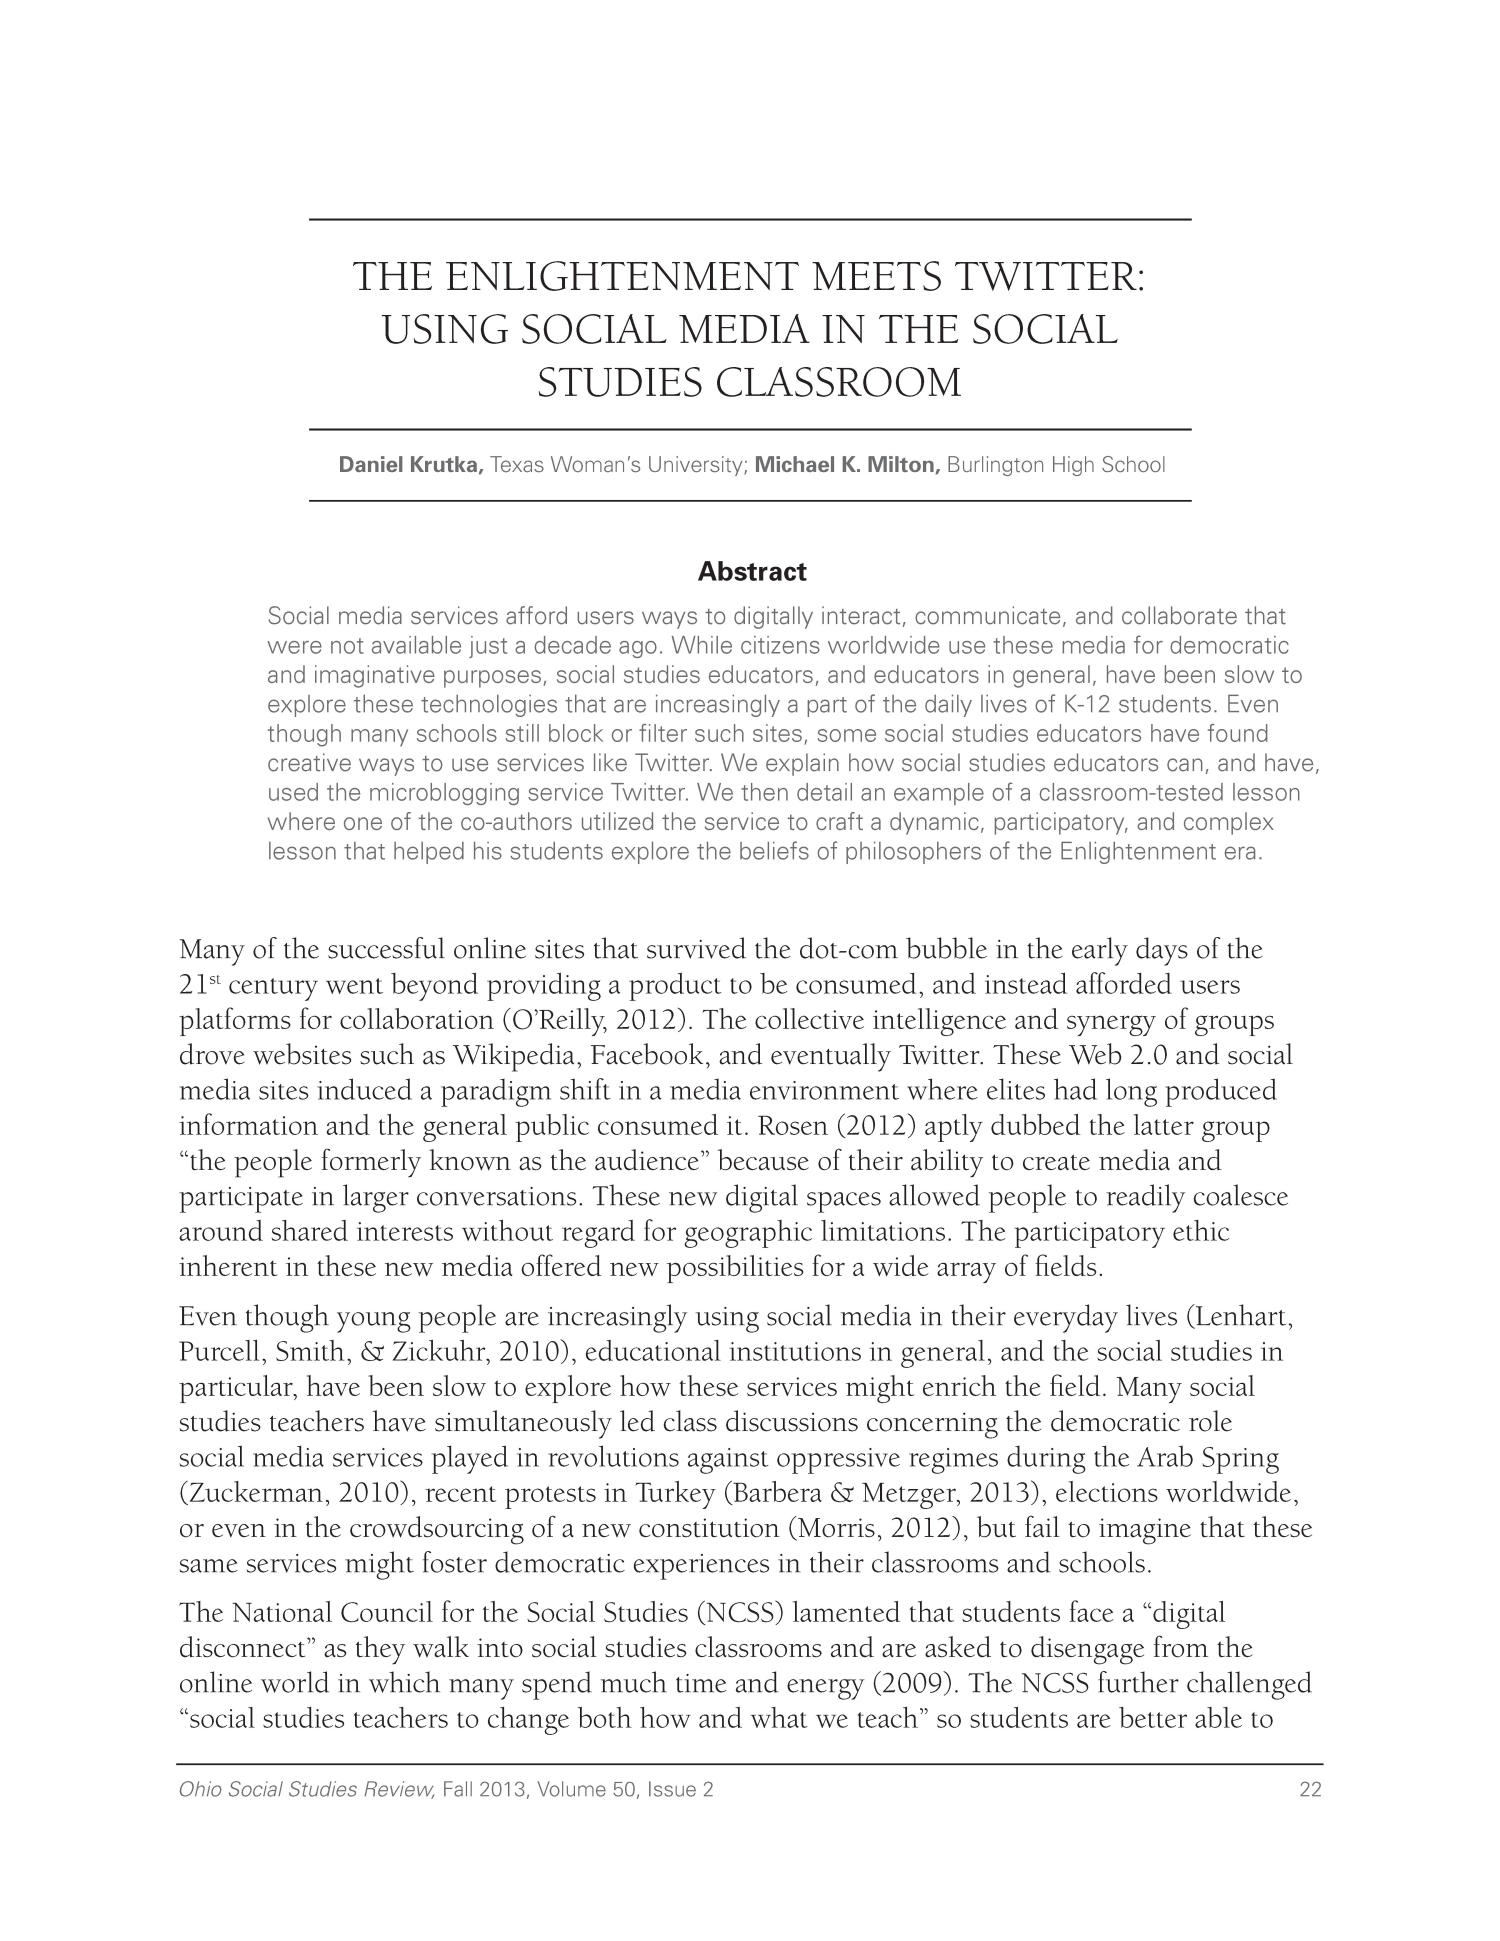 The Enlightenment Meets Twitter: Using Social Media in the Social Studies Classroom